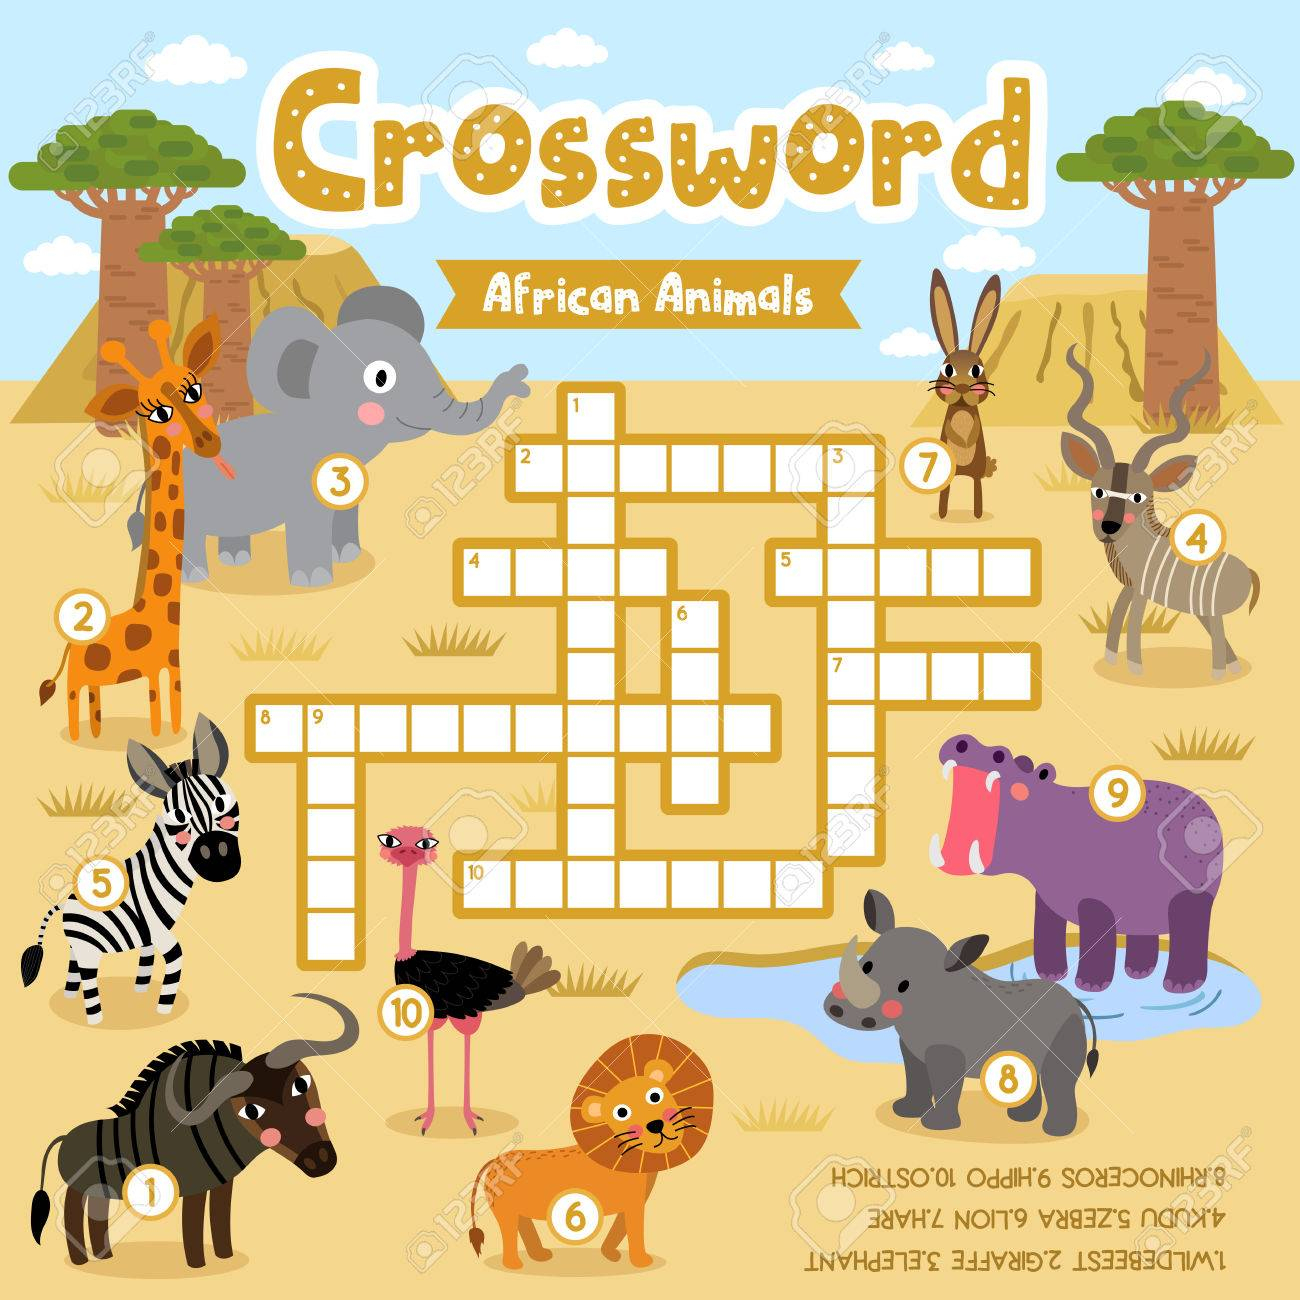 Crosswords Puzzle Game Of African Animals For Preschool Kids - Printable Animal Puzzle